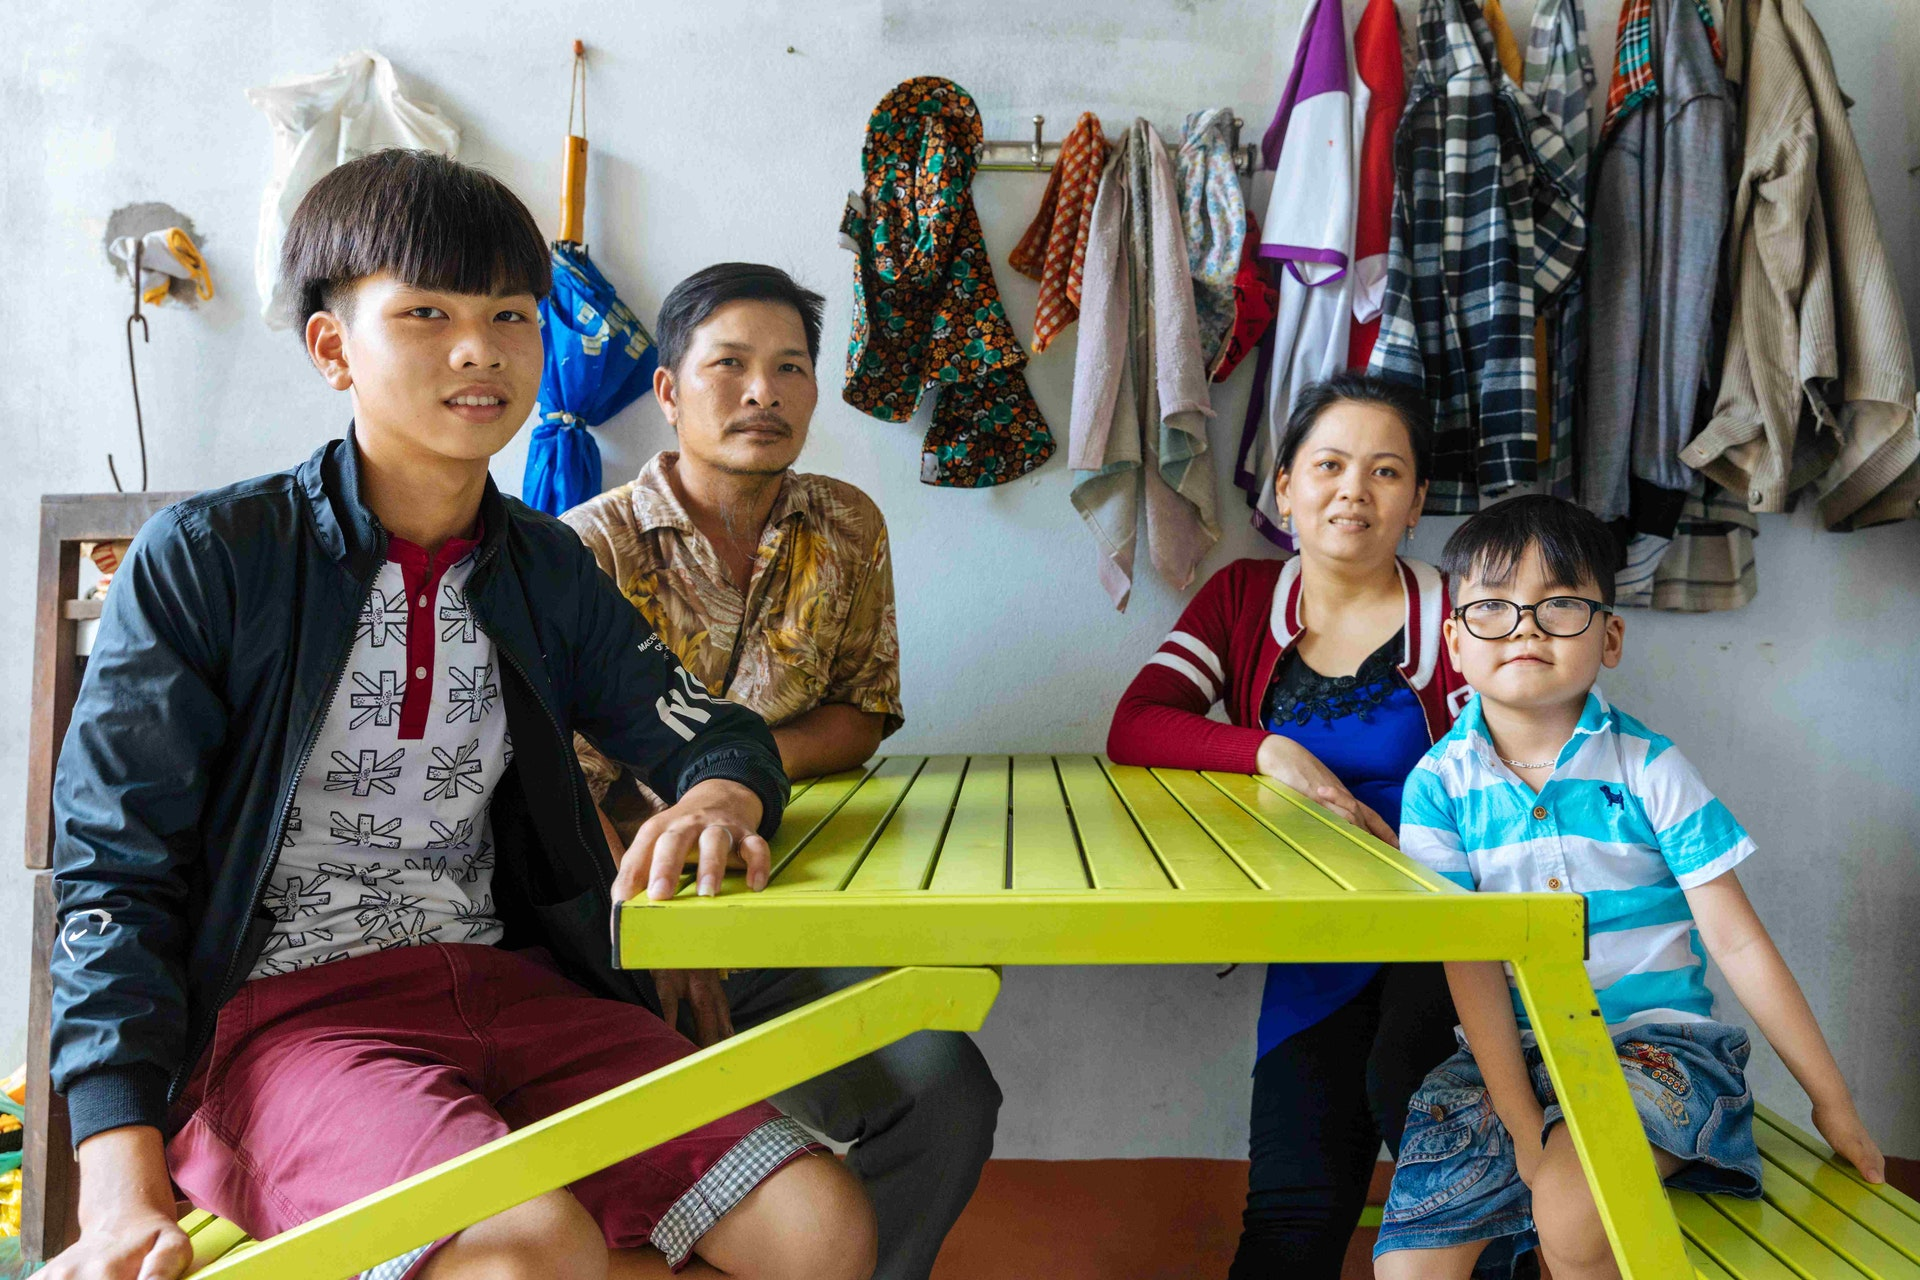 Cataract patient Tam, 5 years, at home with his family in Quy Nhon